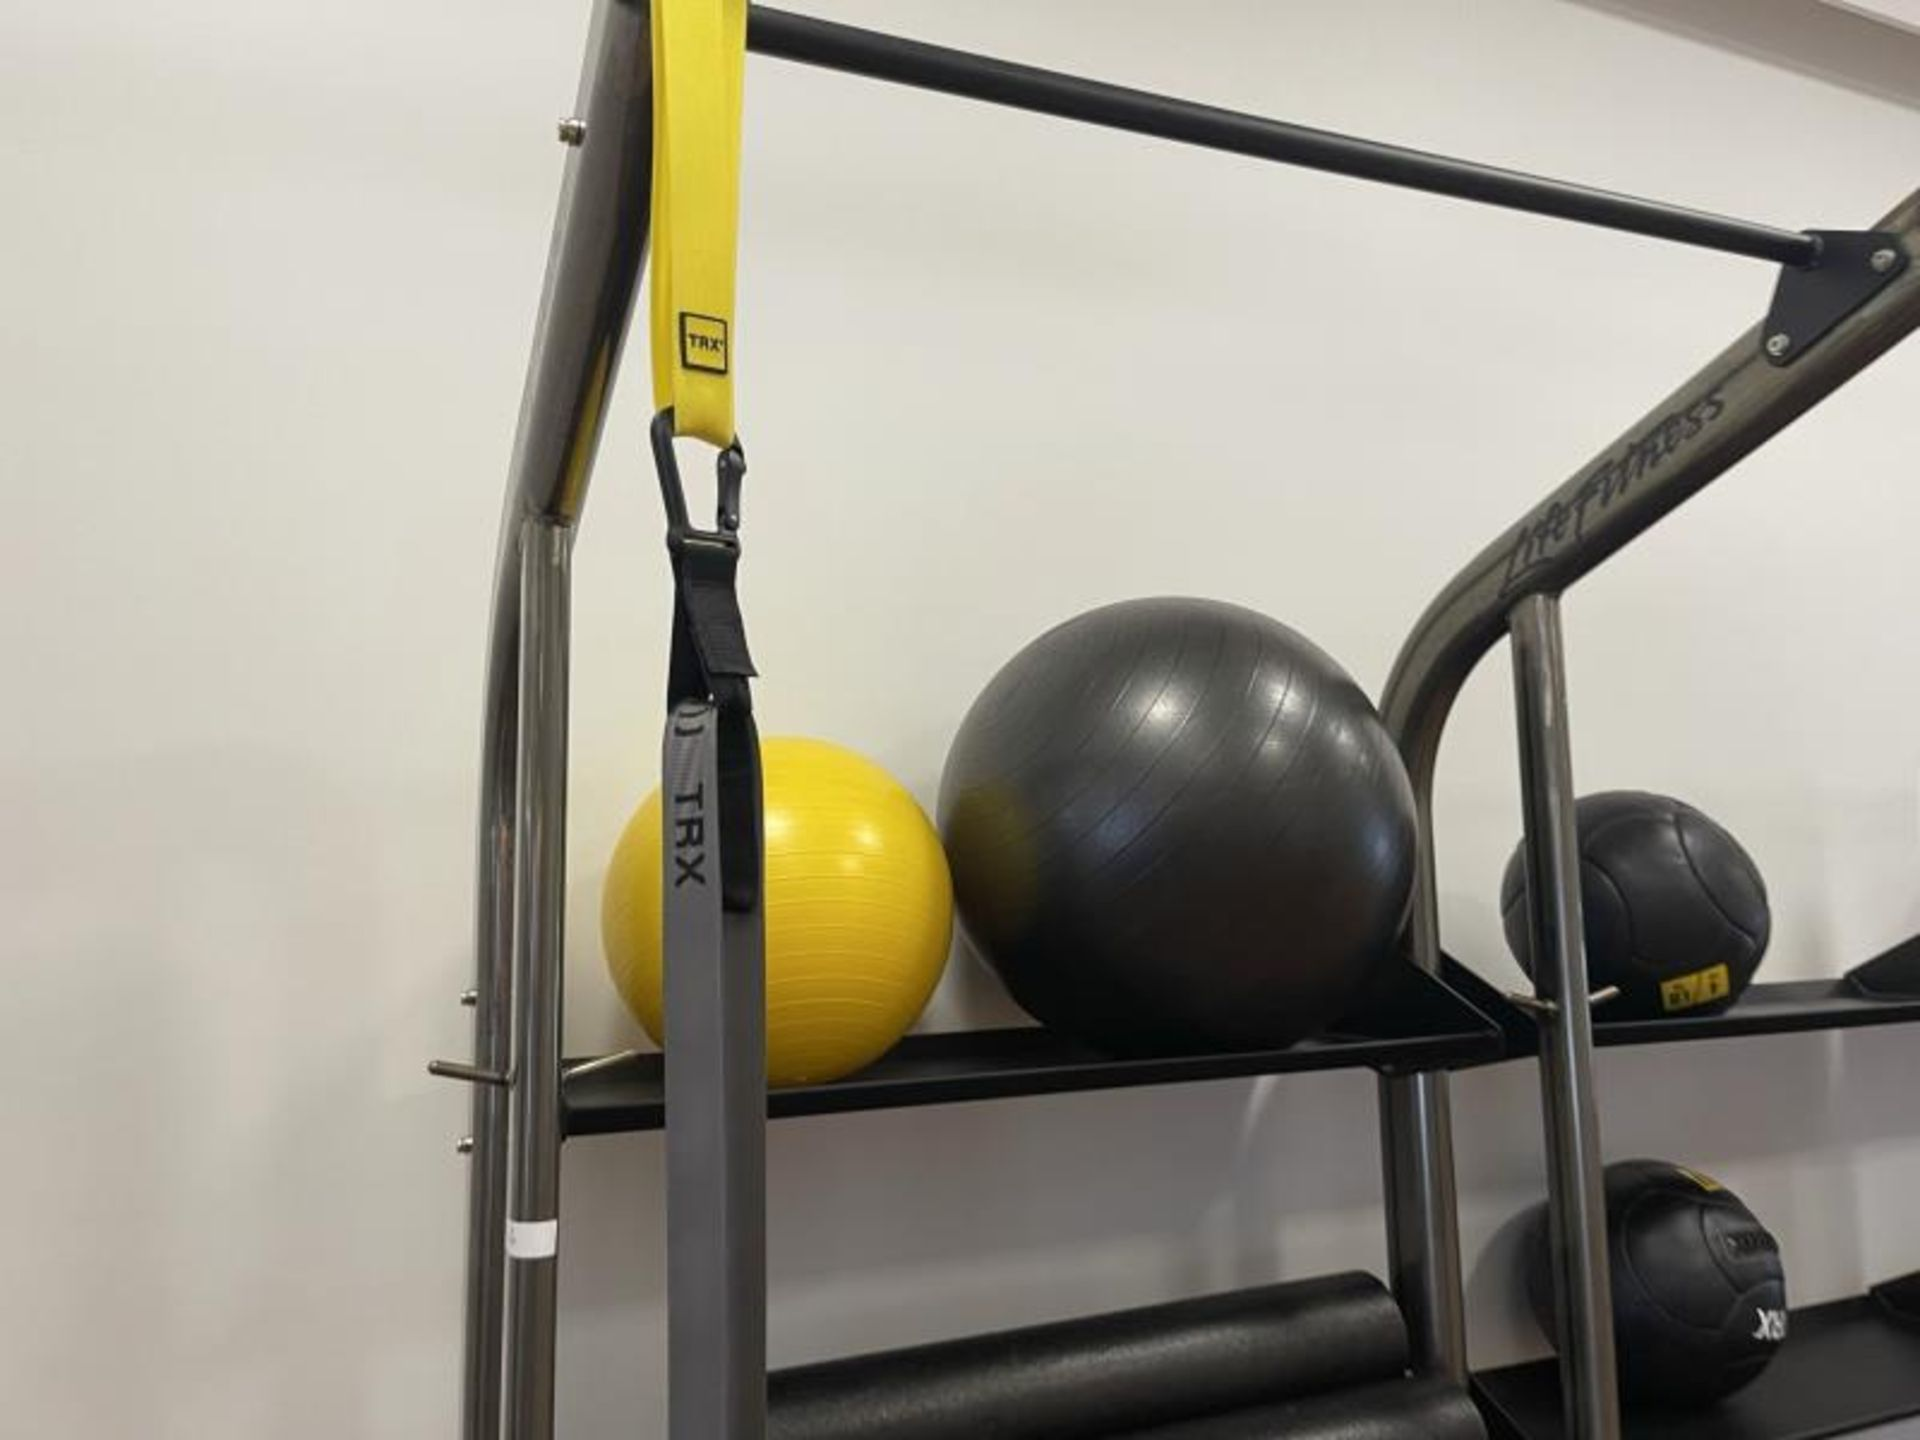 Life Fitness SYNRGY Wall Rack Training System, TRX Training System Straps, Rope, Balls - Image 2 of 8